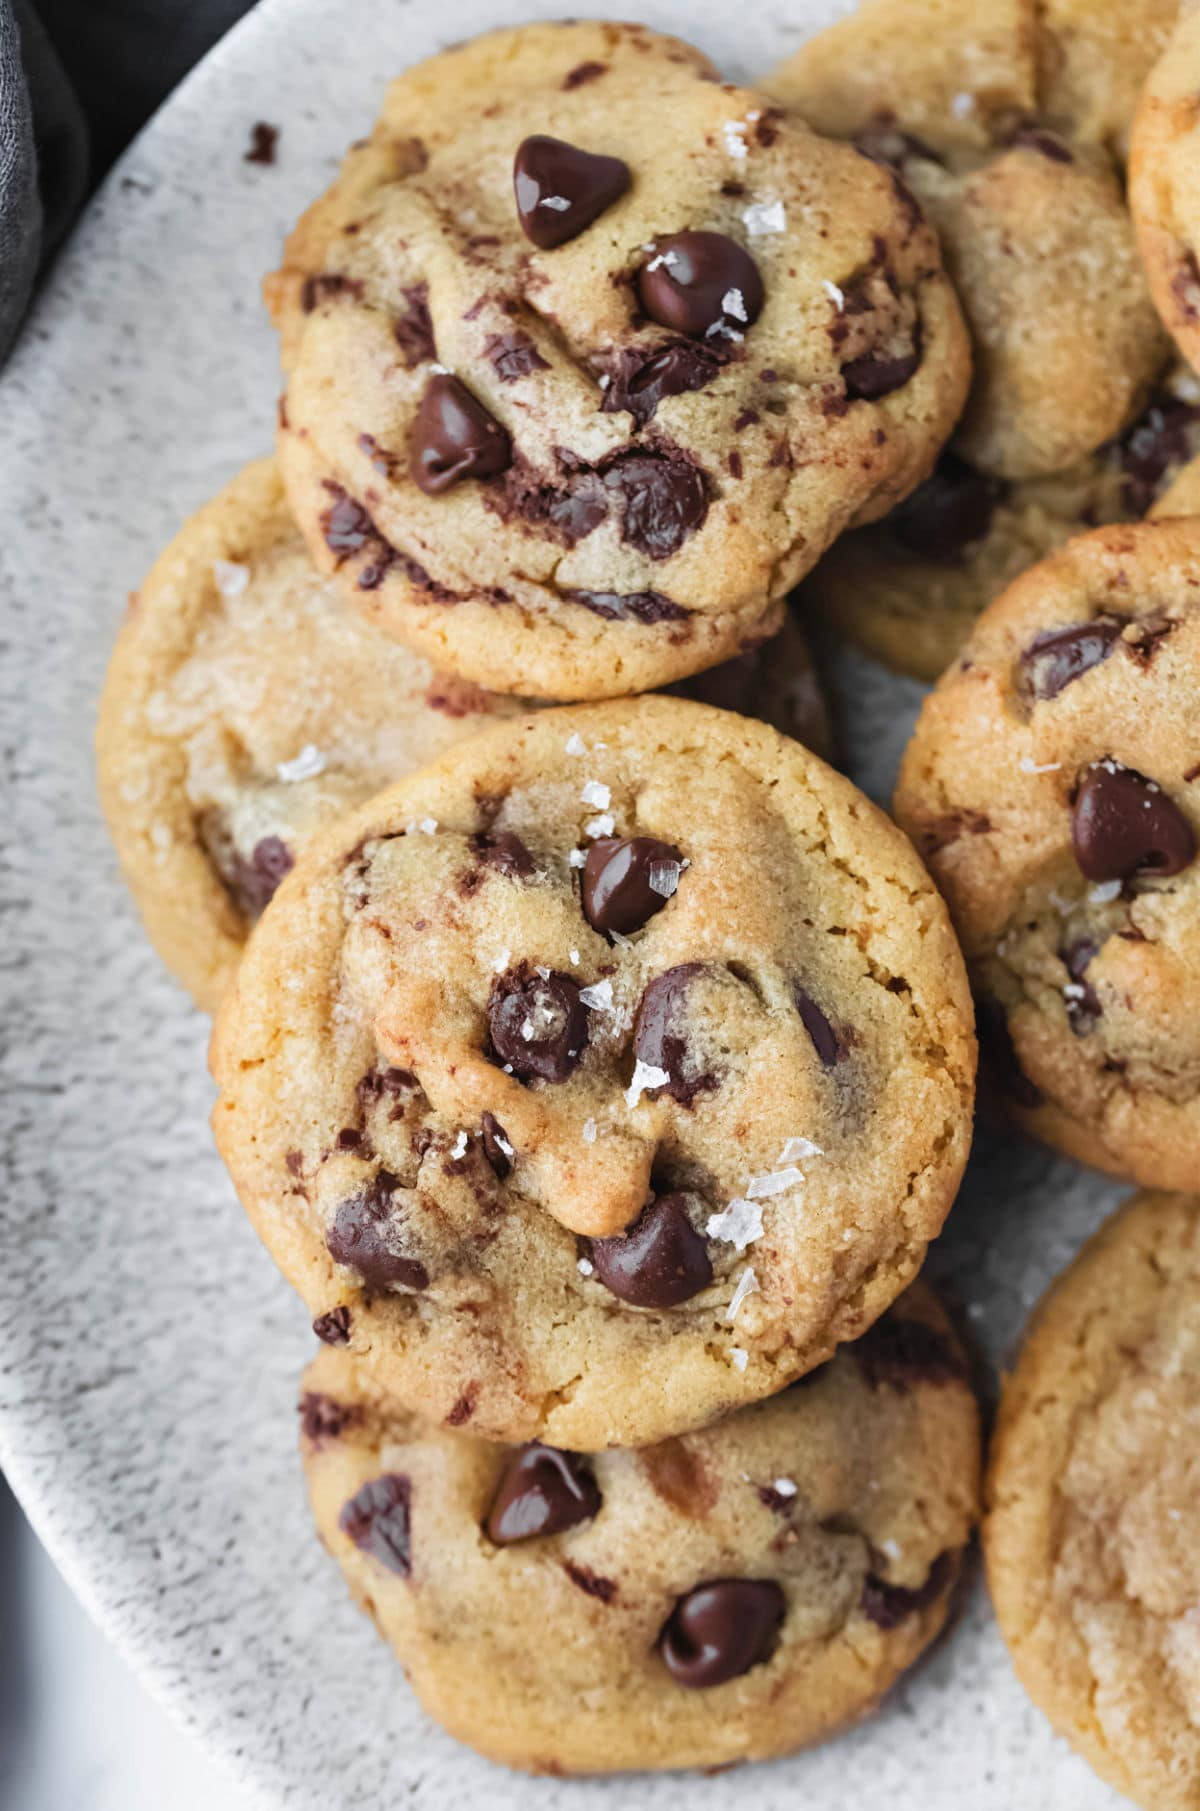 Brown butter chocolate chip cookies stacked on a plate.